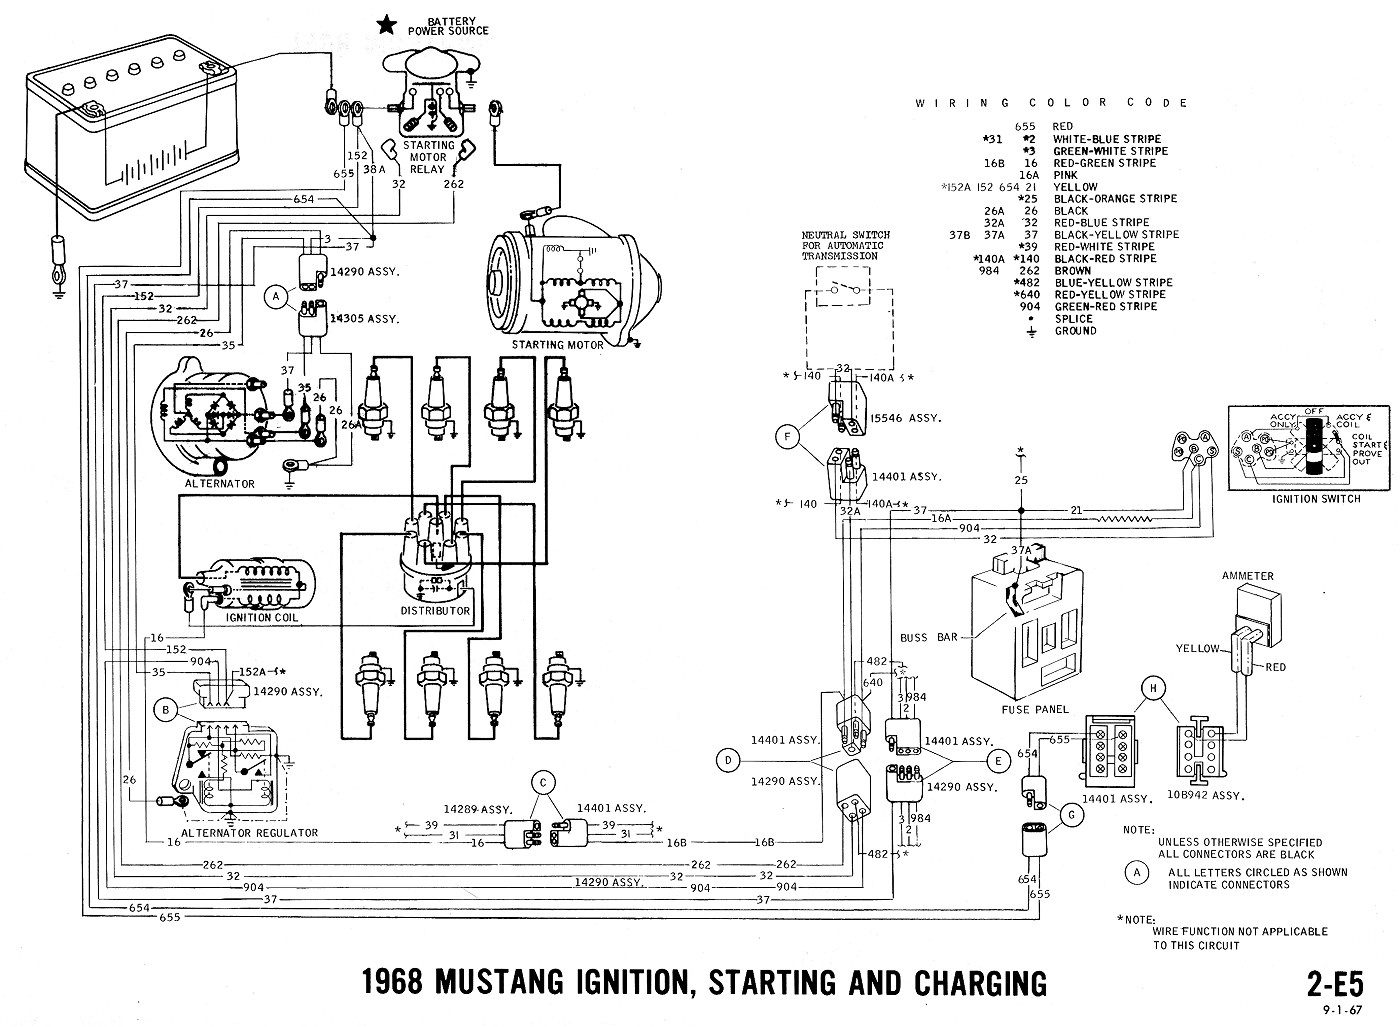 E on 1965 Mustang Power Steering Diagram